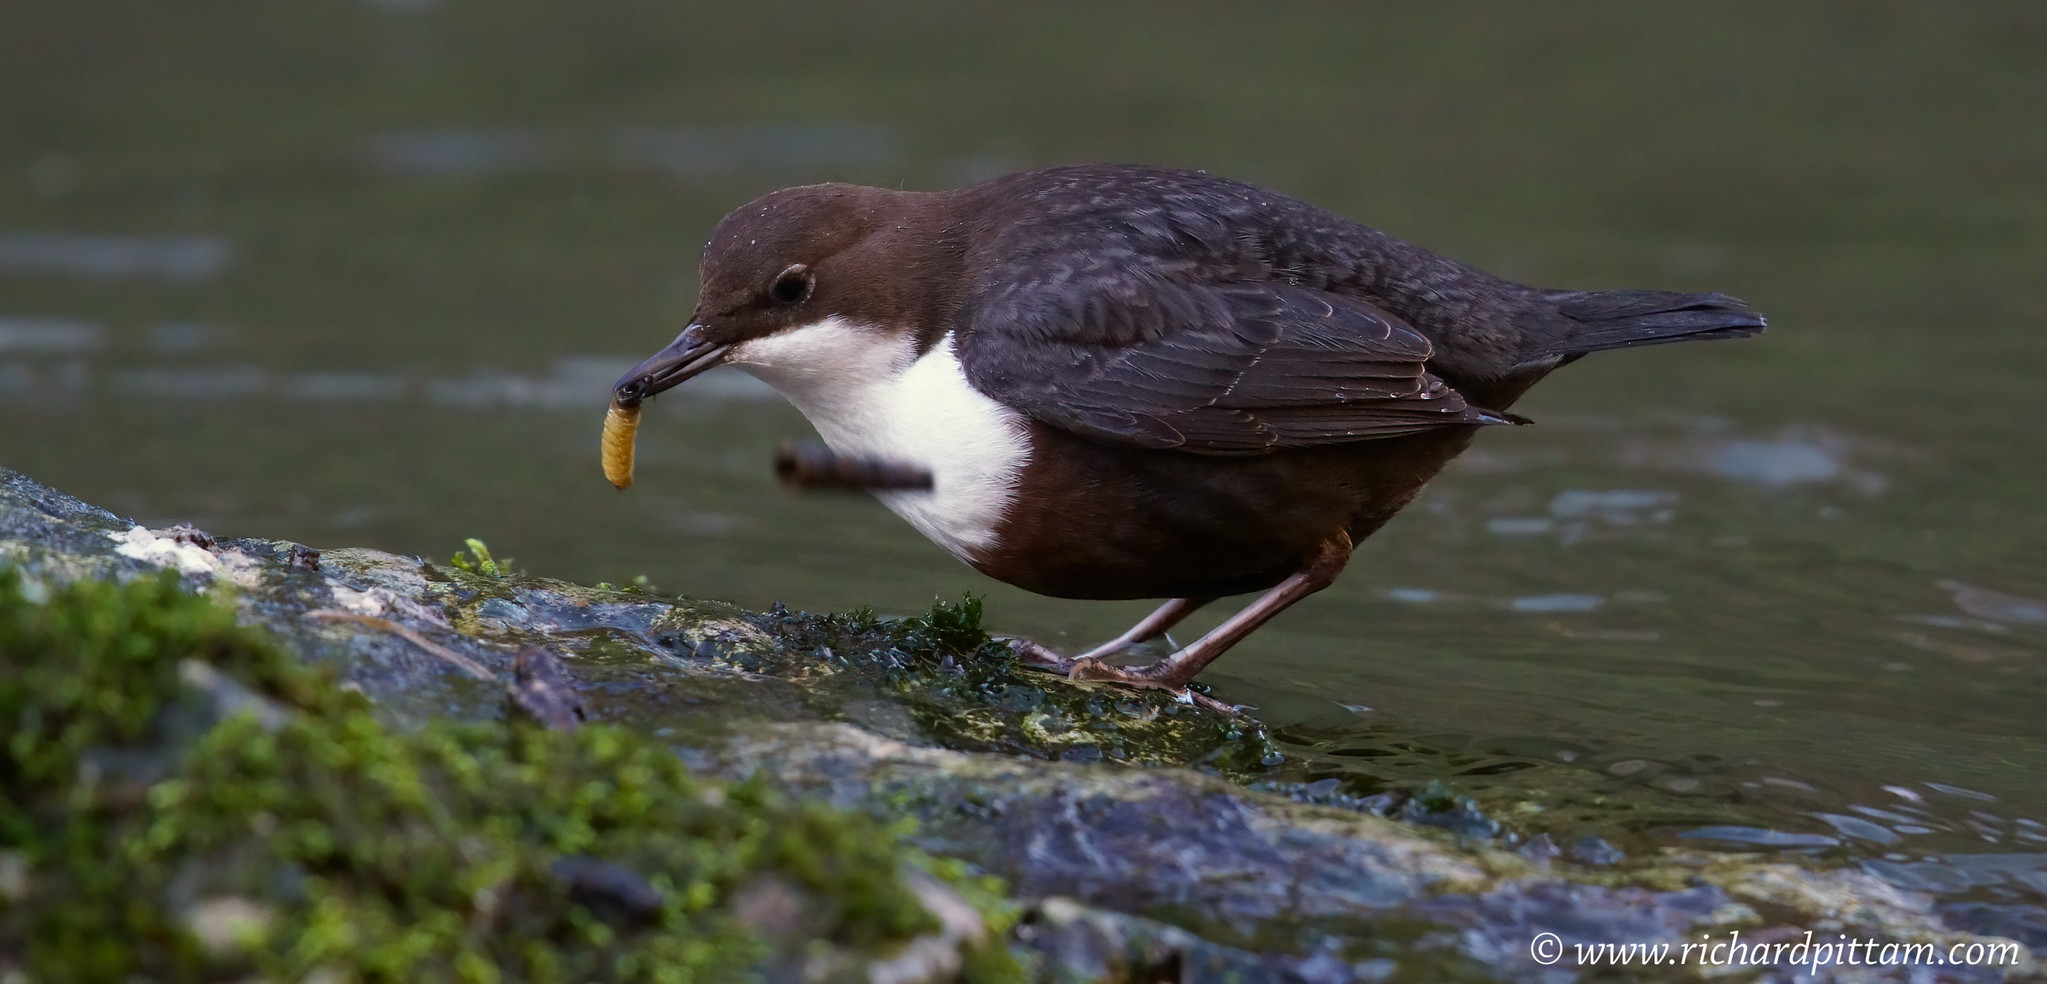 Dipper - wished I had more SS for this separating the Caddis grub from it's casing :-(